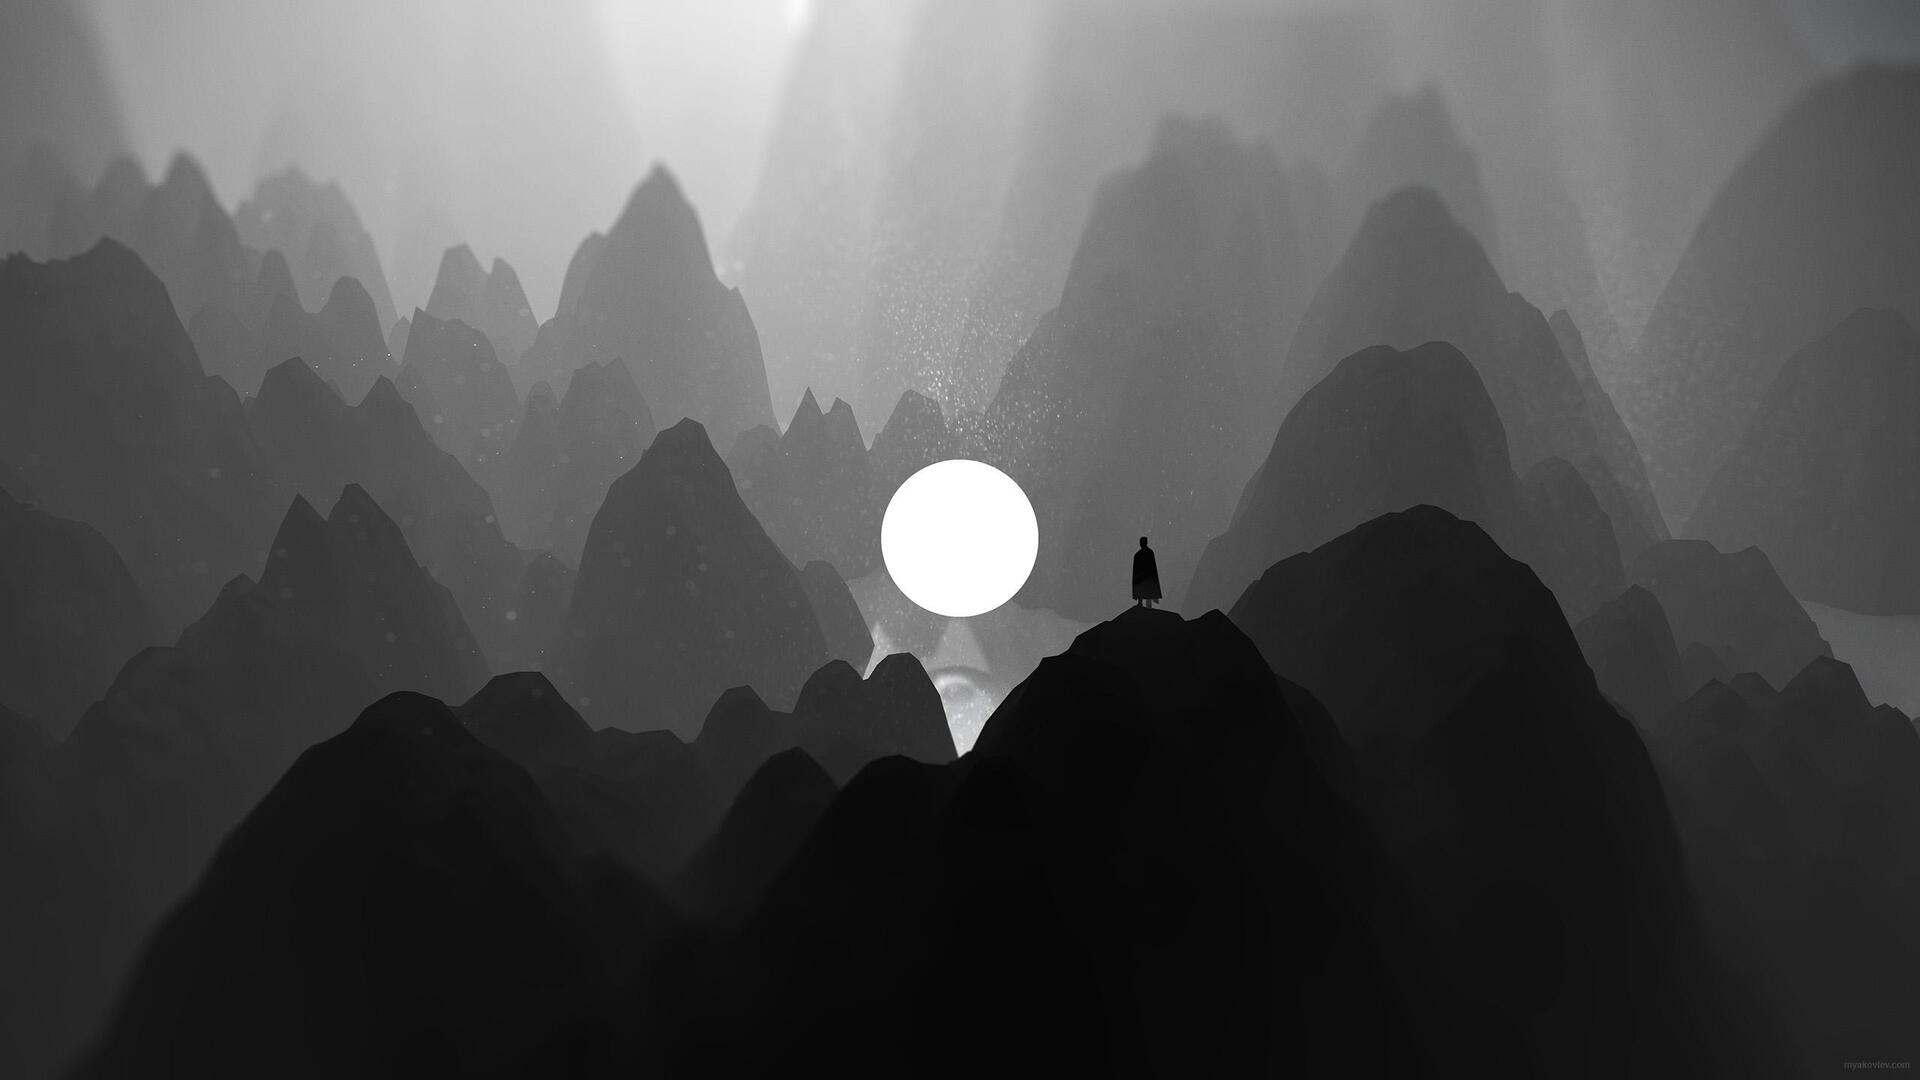 1920x1080 Black And White Moon Man Standing On Mountain